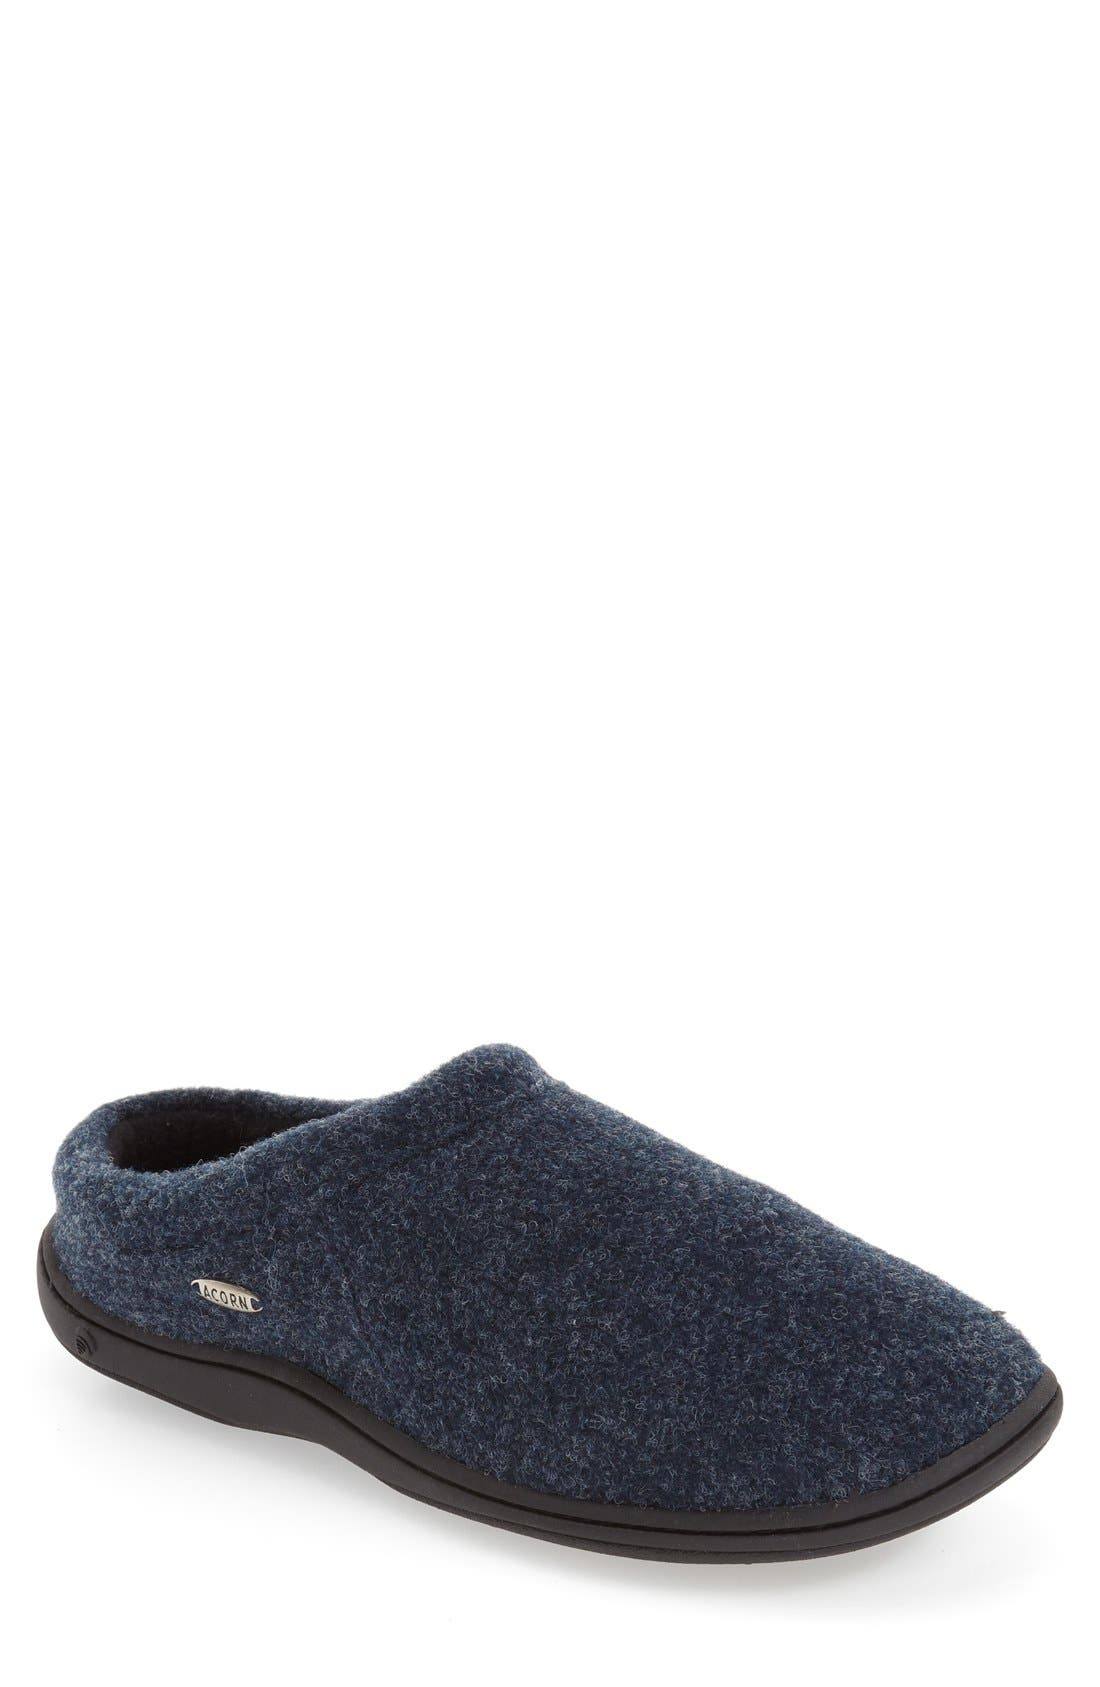 Main Image - Acorn 'Digby' Slipper (Men)